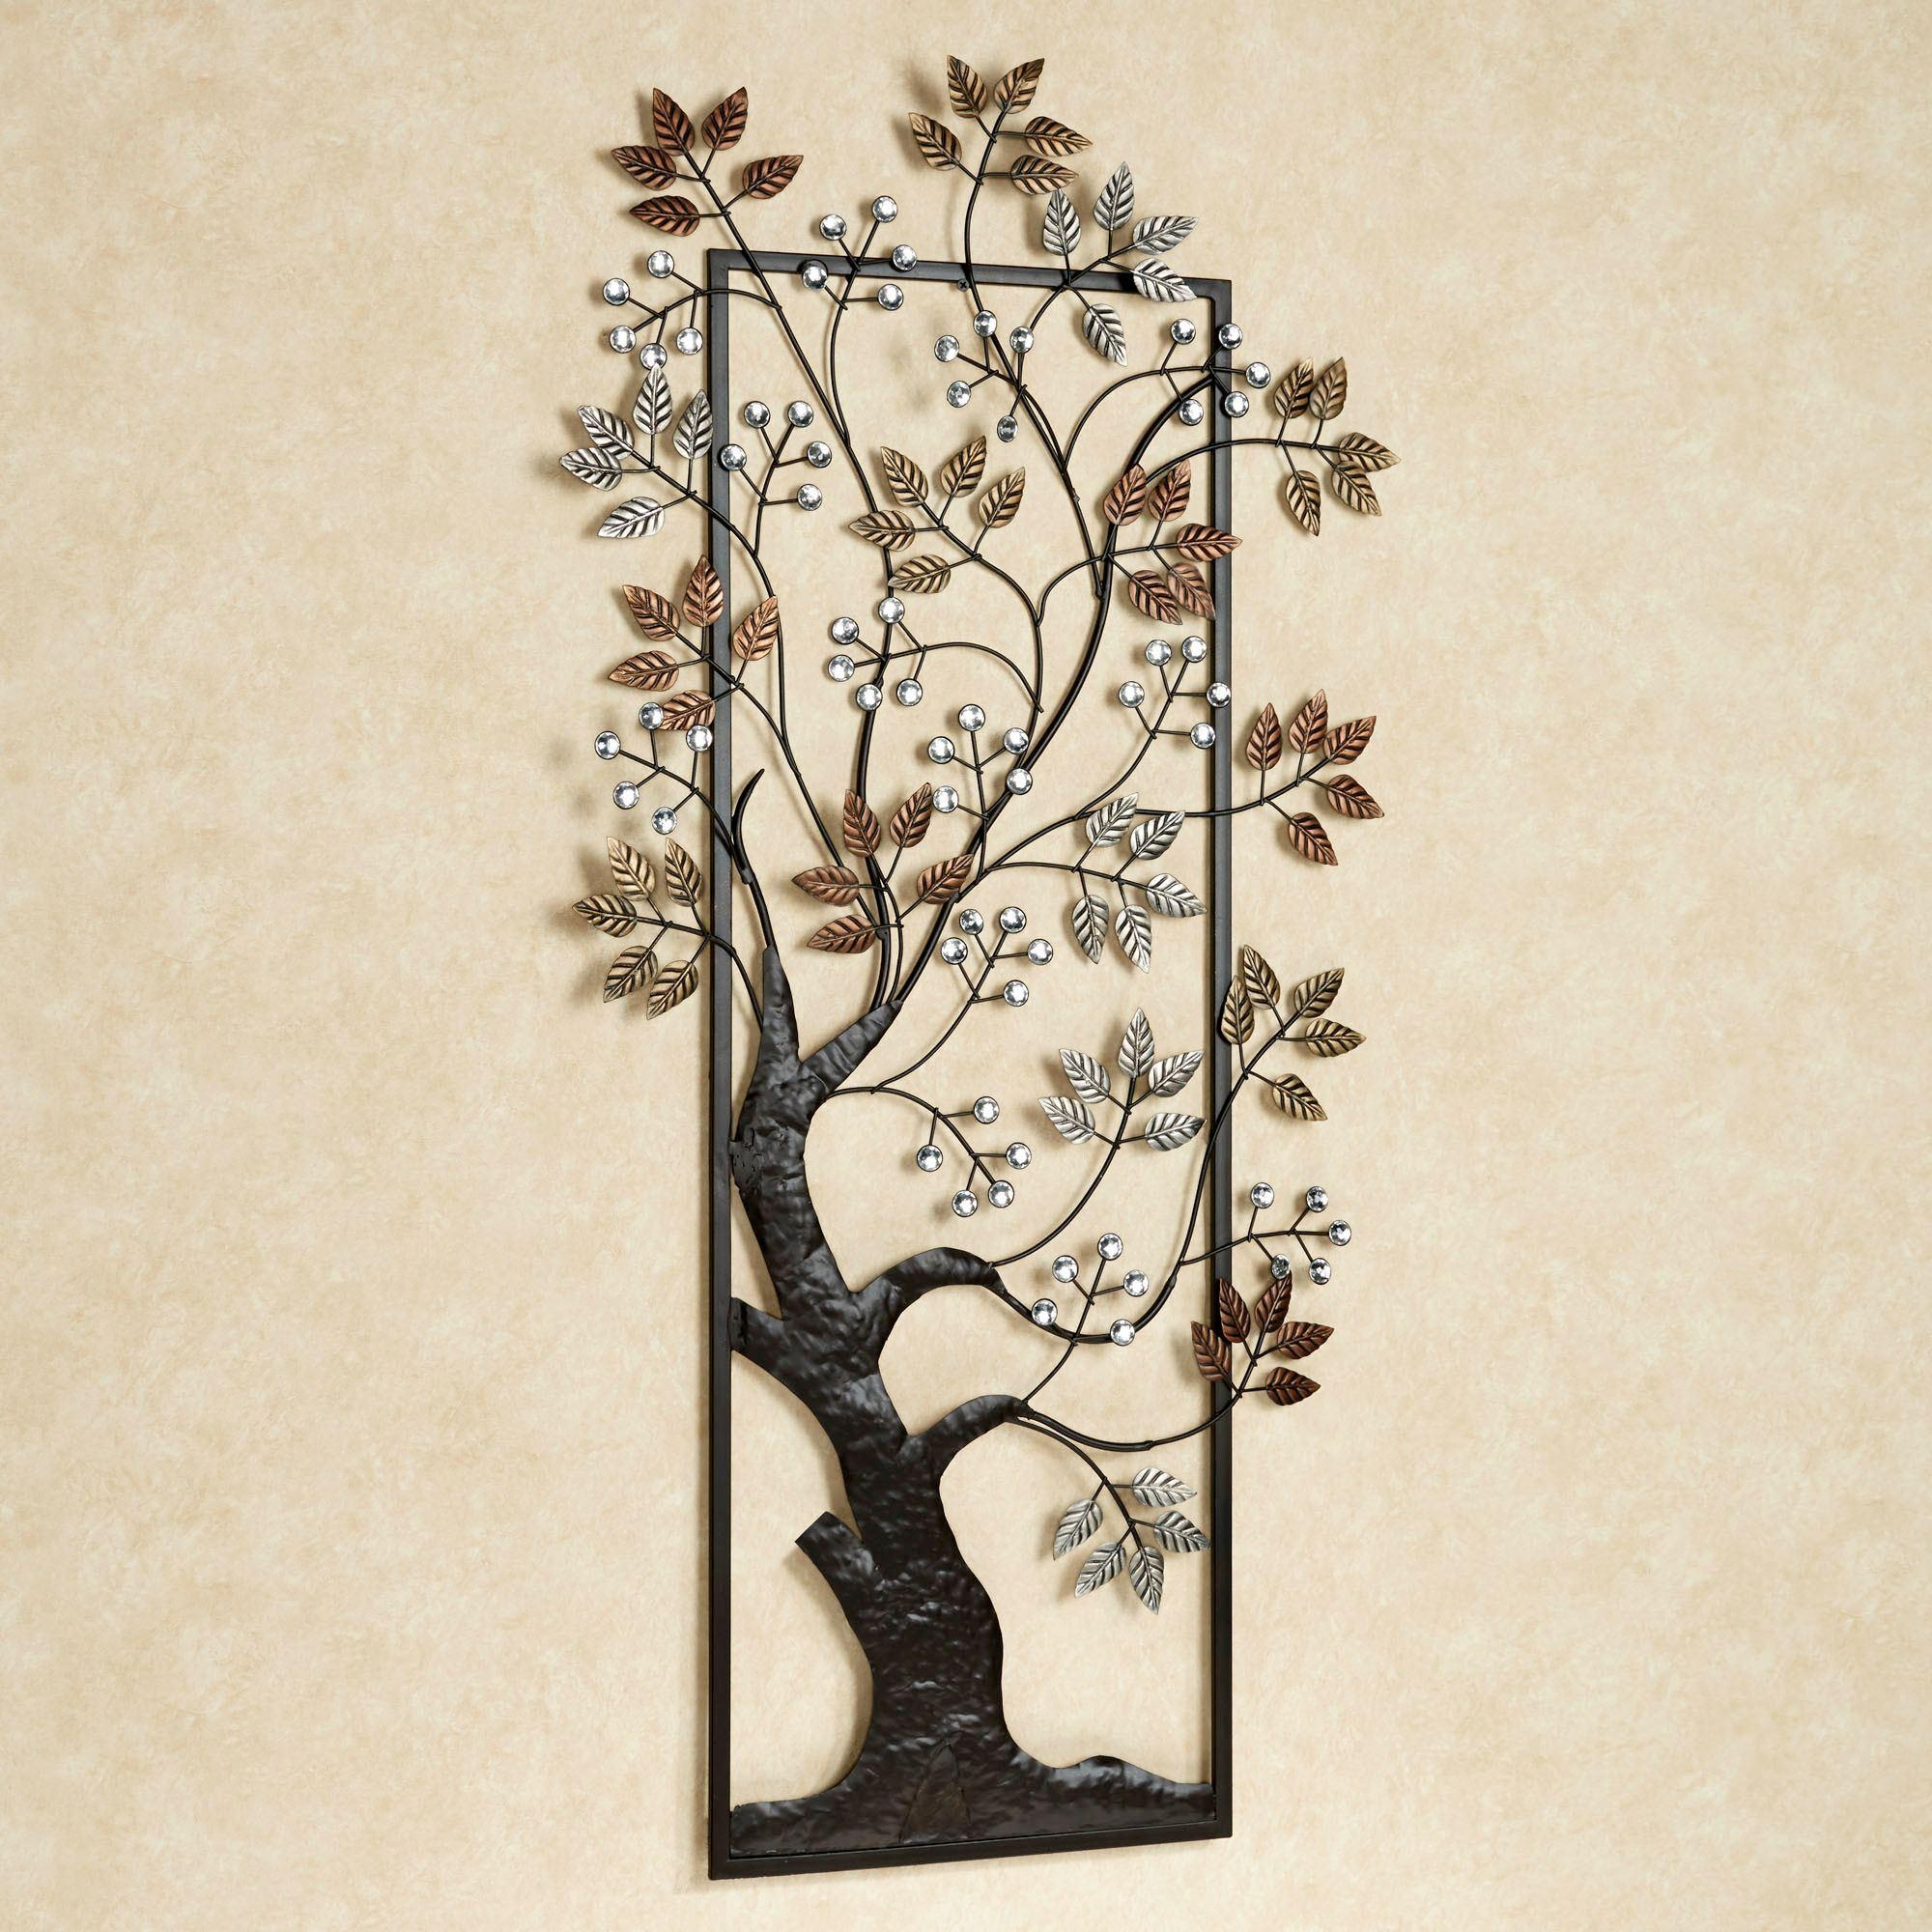 Sun Kissed Branches Metal Tree Wall Art With Metal Wall Art Trees And Branches (Image 12 of 20)